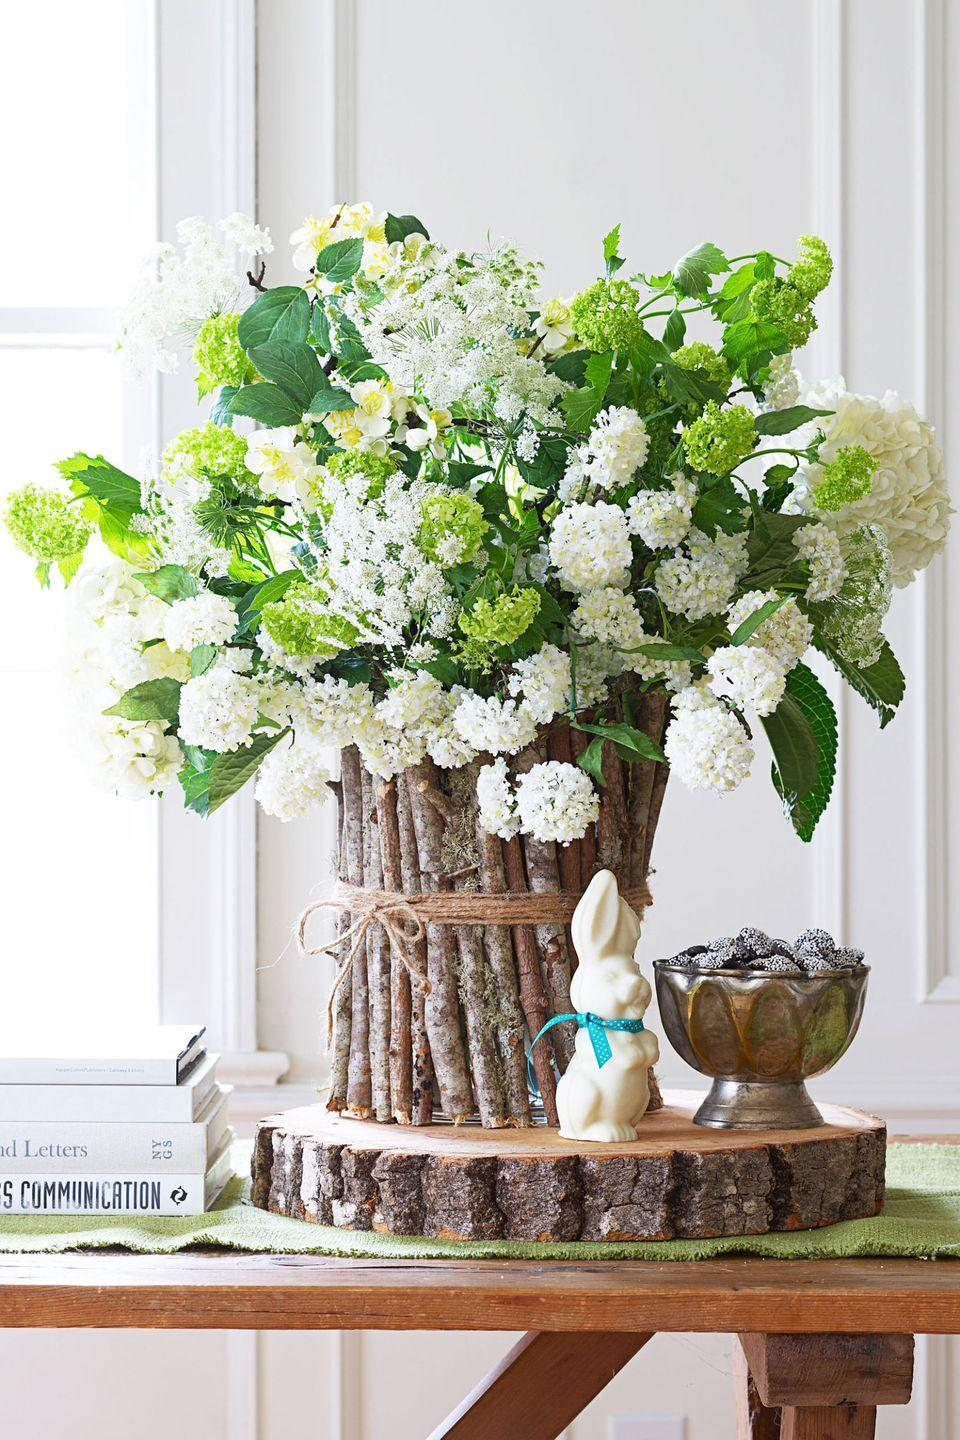 """<p>Queen Anne's lace and cream hydrangeas take on a rustic vibe when arranged in a wood-lined vase that's tied up with twine. </p><p><em><a href=""""http://www.goodhousekeeping.com/holidays/easter-ideas/g1906/easter-flowers/?slide=9"""" rel=""""nofollow noopener"""" target=""""_blank"""" data-ylk=""""slk:See more at Good Housekeeping »"""" class=""""link rapid-noclick-resp"""">See more at Good Housekeeping »</a></em></p><p><strong><em>Studio Ro-Smit Beige Vase $130</em></strong> <a class=""""link rapid-noclick-resp"""" href=""""https://www.goodeeworld.com/collections/all/products/vase-beige"""" rel=""""nofollow noopener"""" target=""""_blank"""" data-ylk=""""slk:BUY NOW"""">BUY NOW</a></p>"""